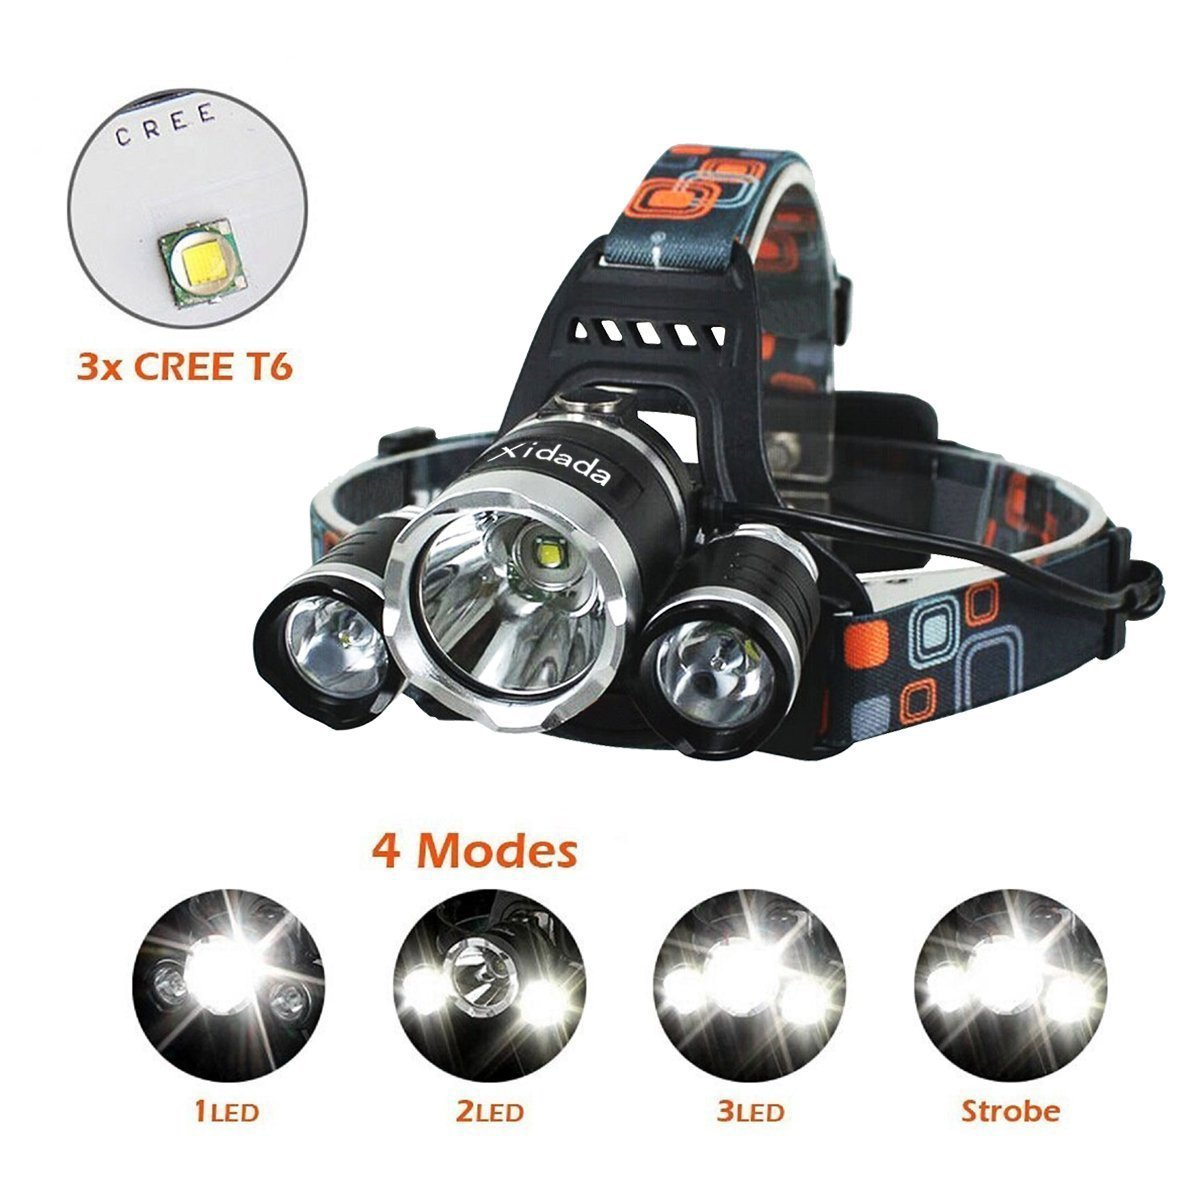 Headlamp Flashlight - 10000 Lumen,18650 Batteries Operated,Head Lamp Provide with 3 Original CREE LED,Perfect for Runners,Lightweight,Waterproof,Adjustable Headband,(18650 Batteries and Charger)Includ